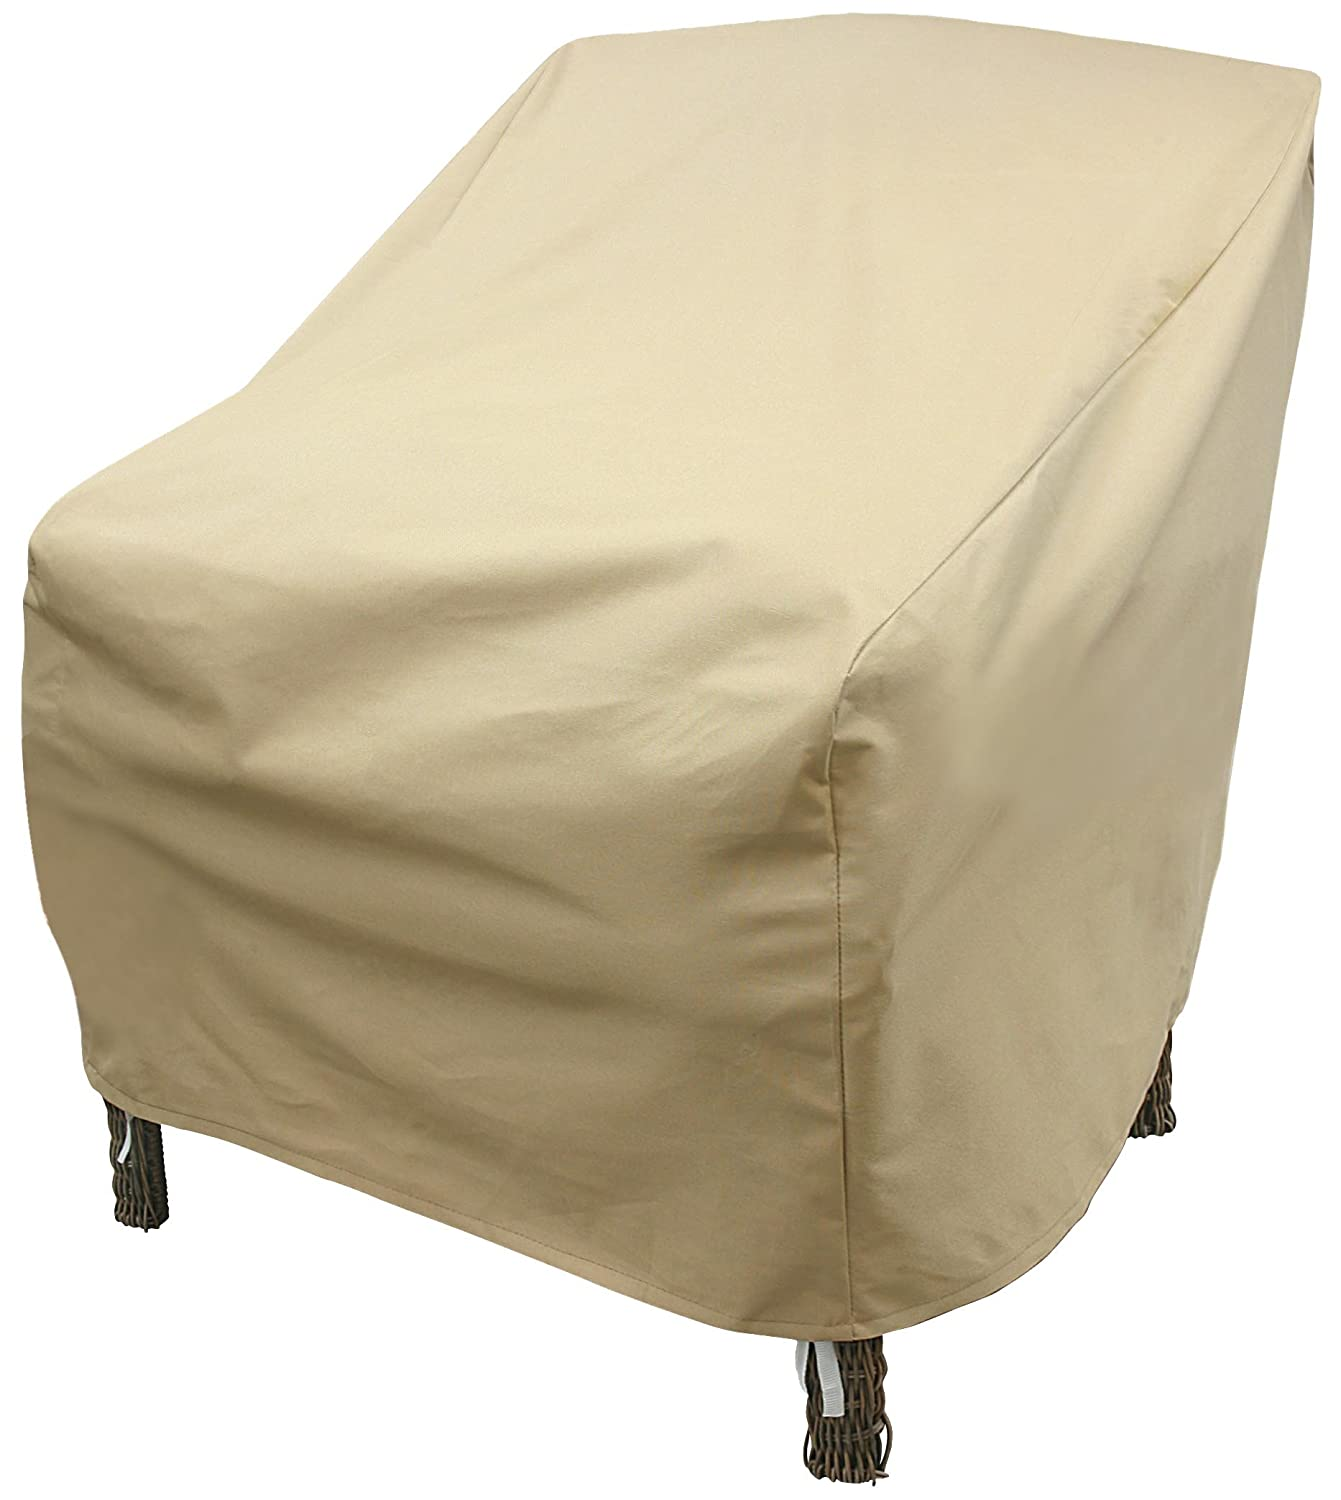 chair covers waterproof personalized bean bag modern leisure patio cover new free shipping ebay